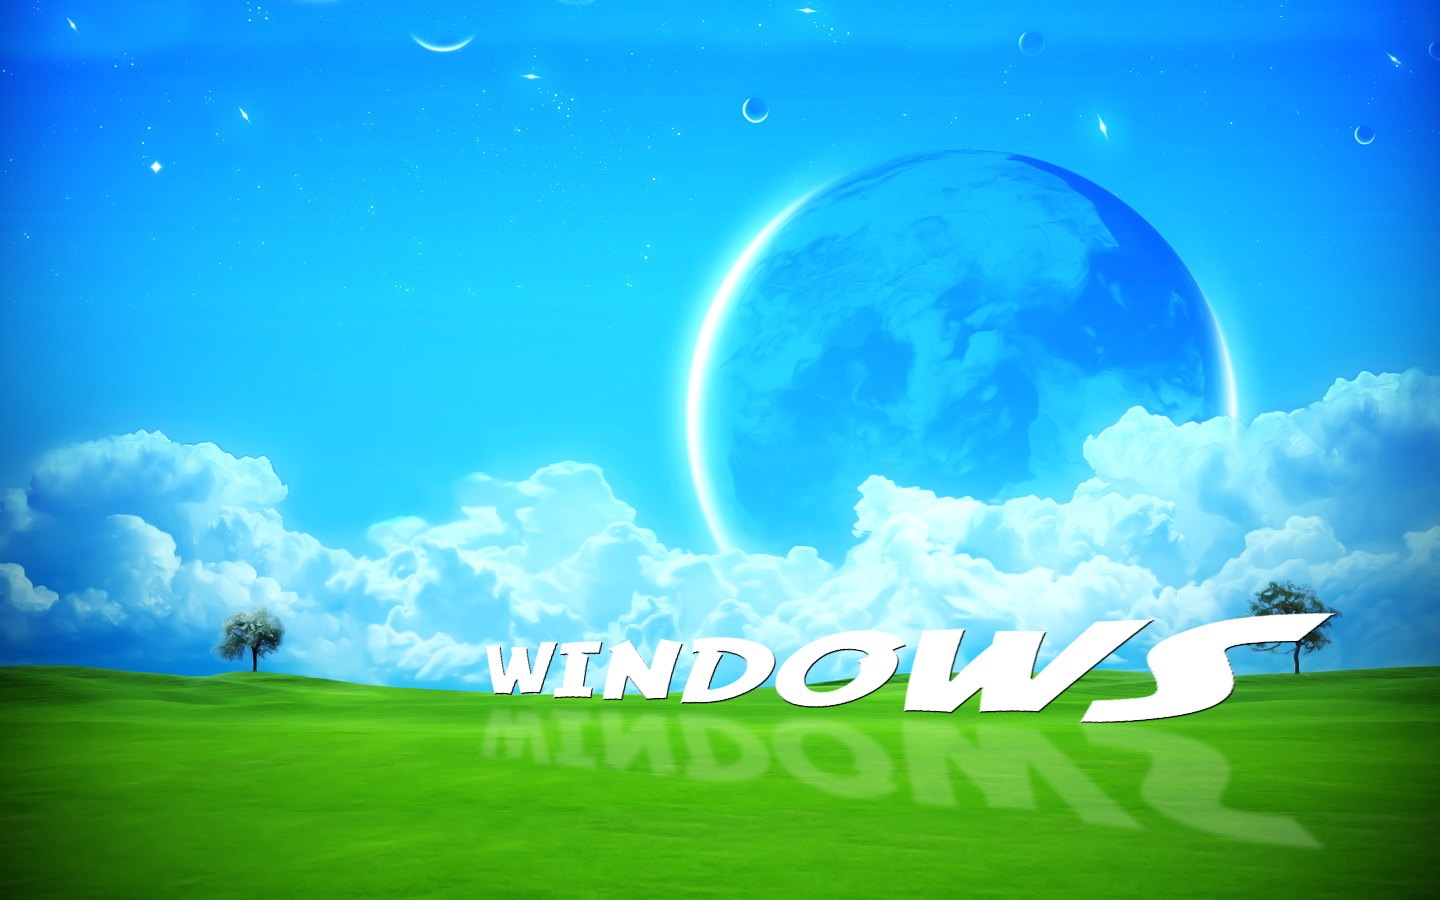 For Desktop Animated Wallpapers For Desktop Animated Wallpapers For .